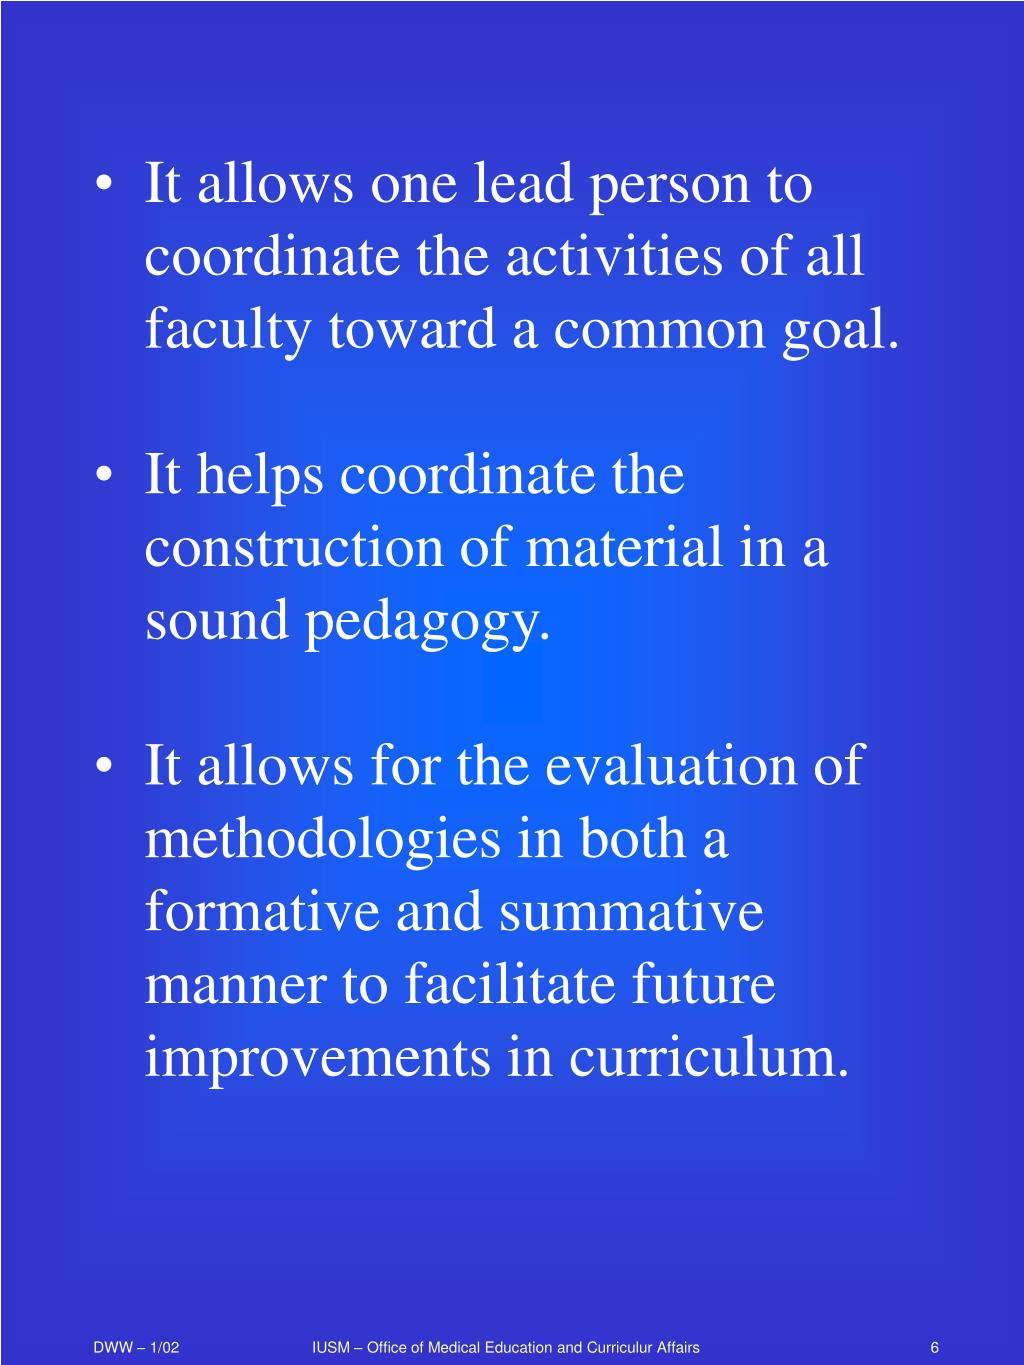 It allows one lead person to coordinate the activities of all faculty toward a common goal.